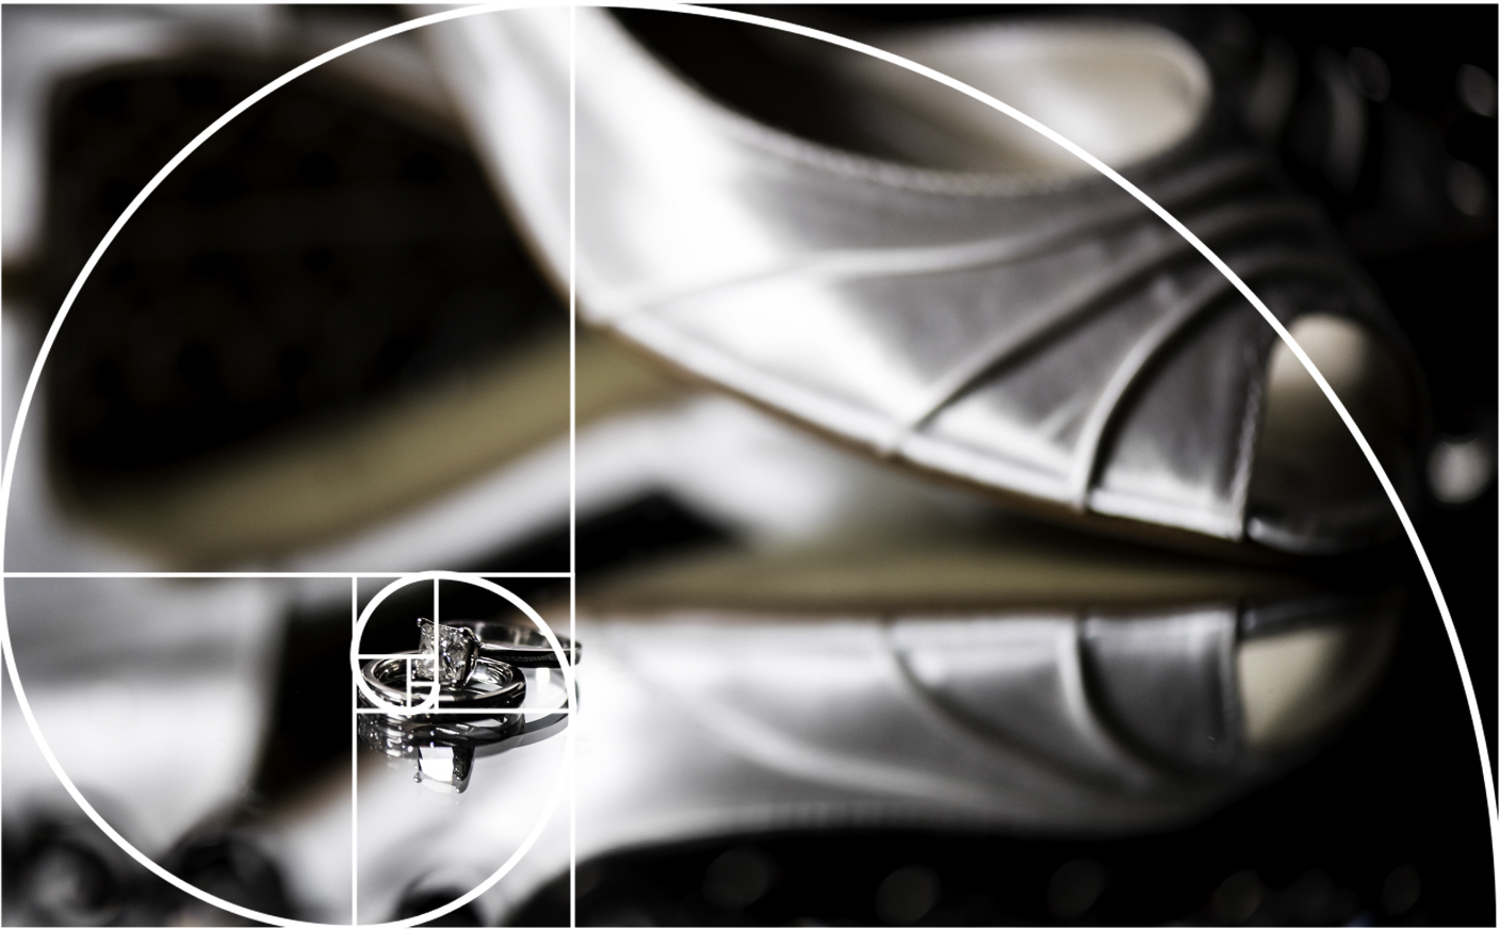 An overlay of the Golden Ratio over a shot of an engagement ring and wedding band